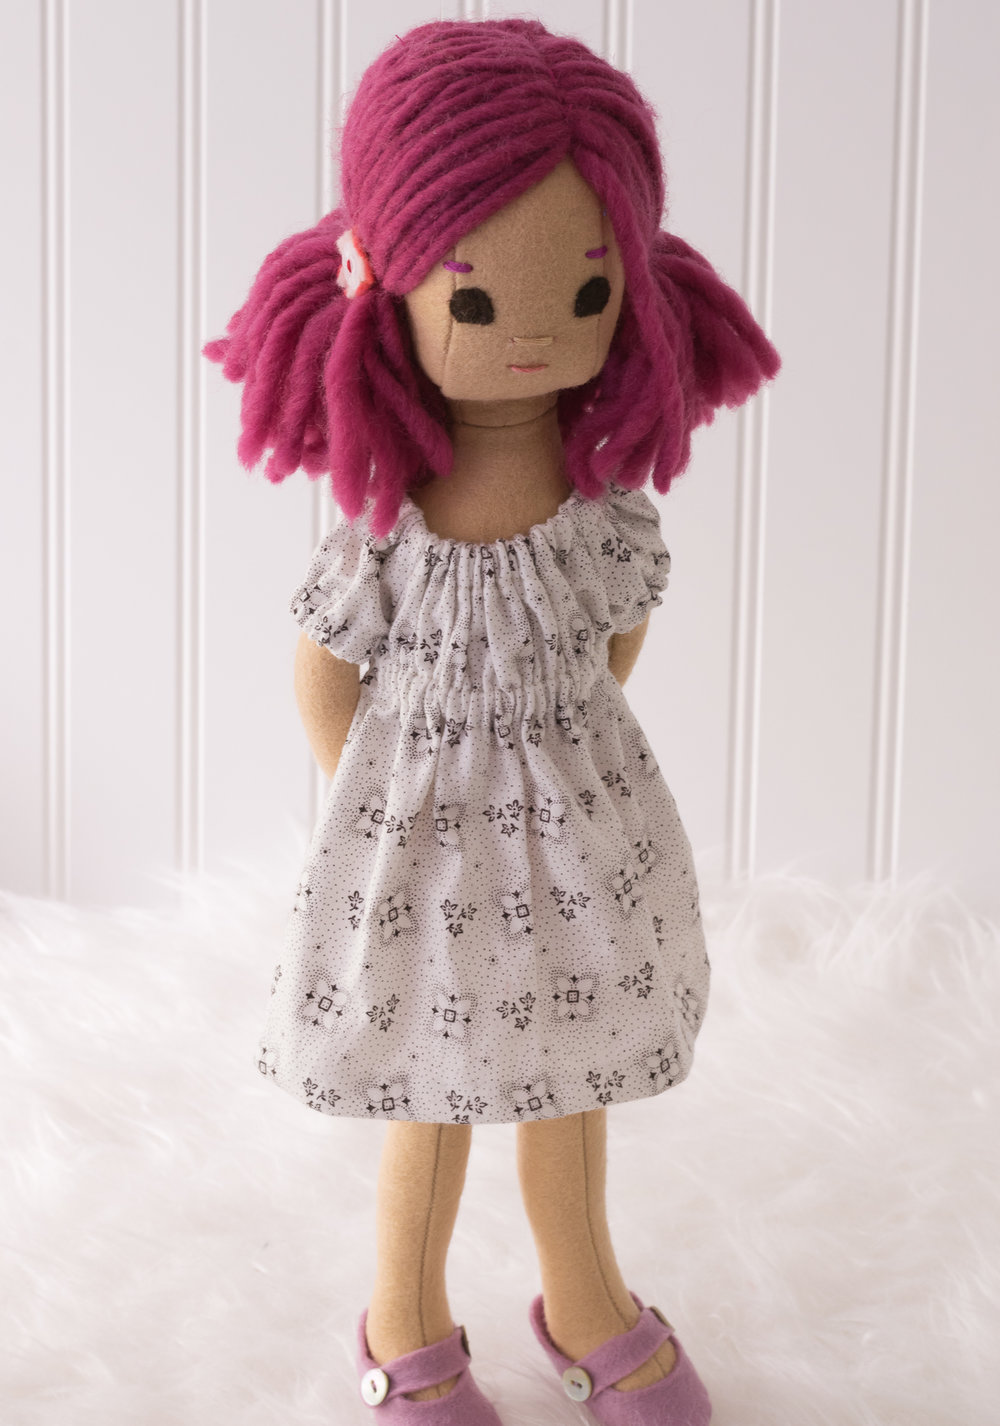 Gallery of Dolls-29.jpg